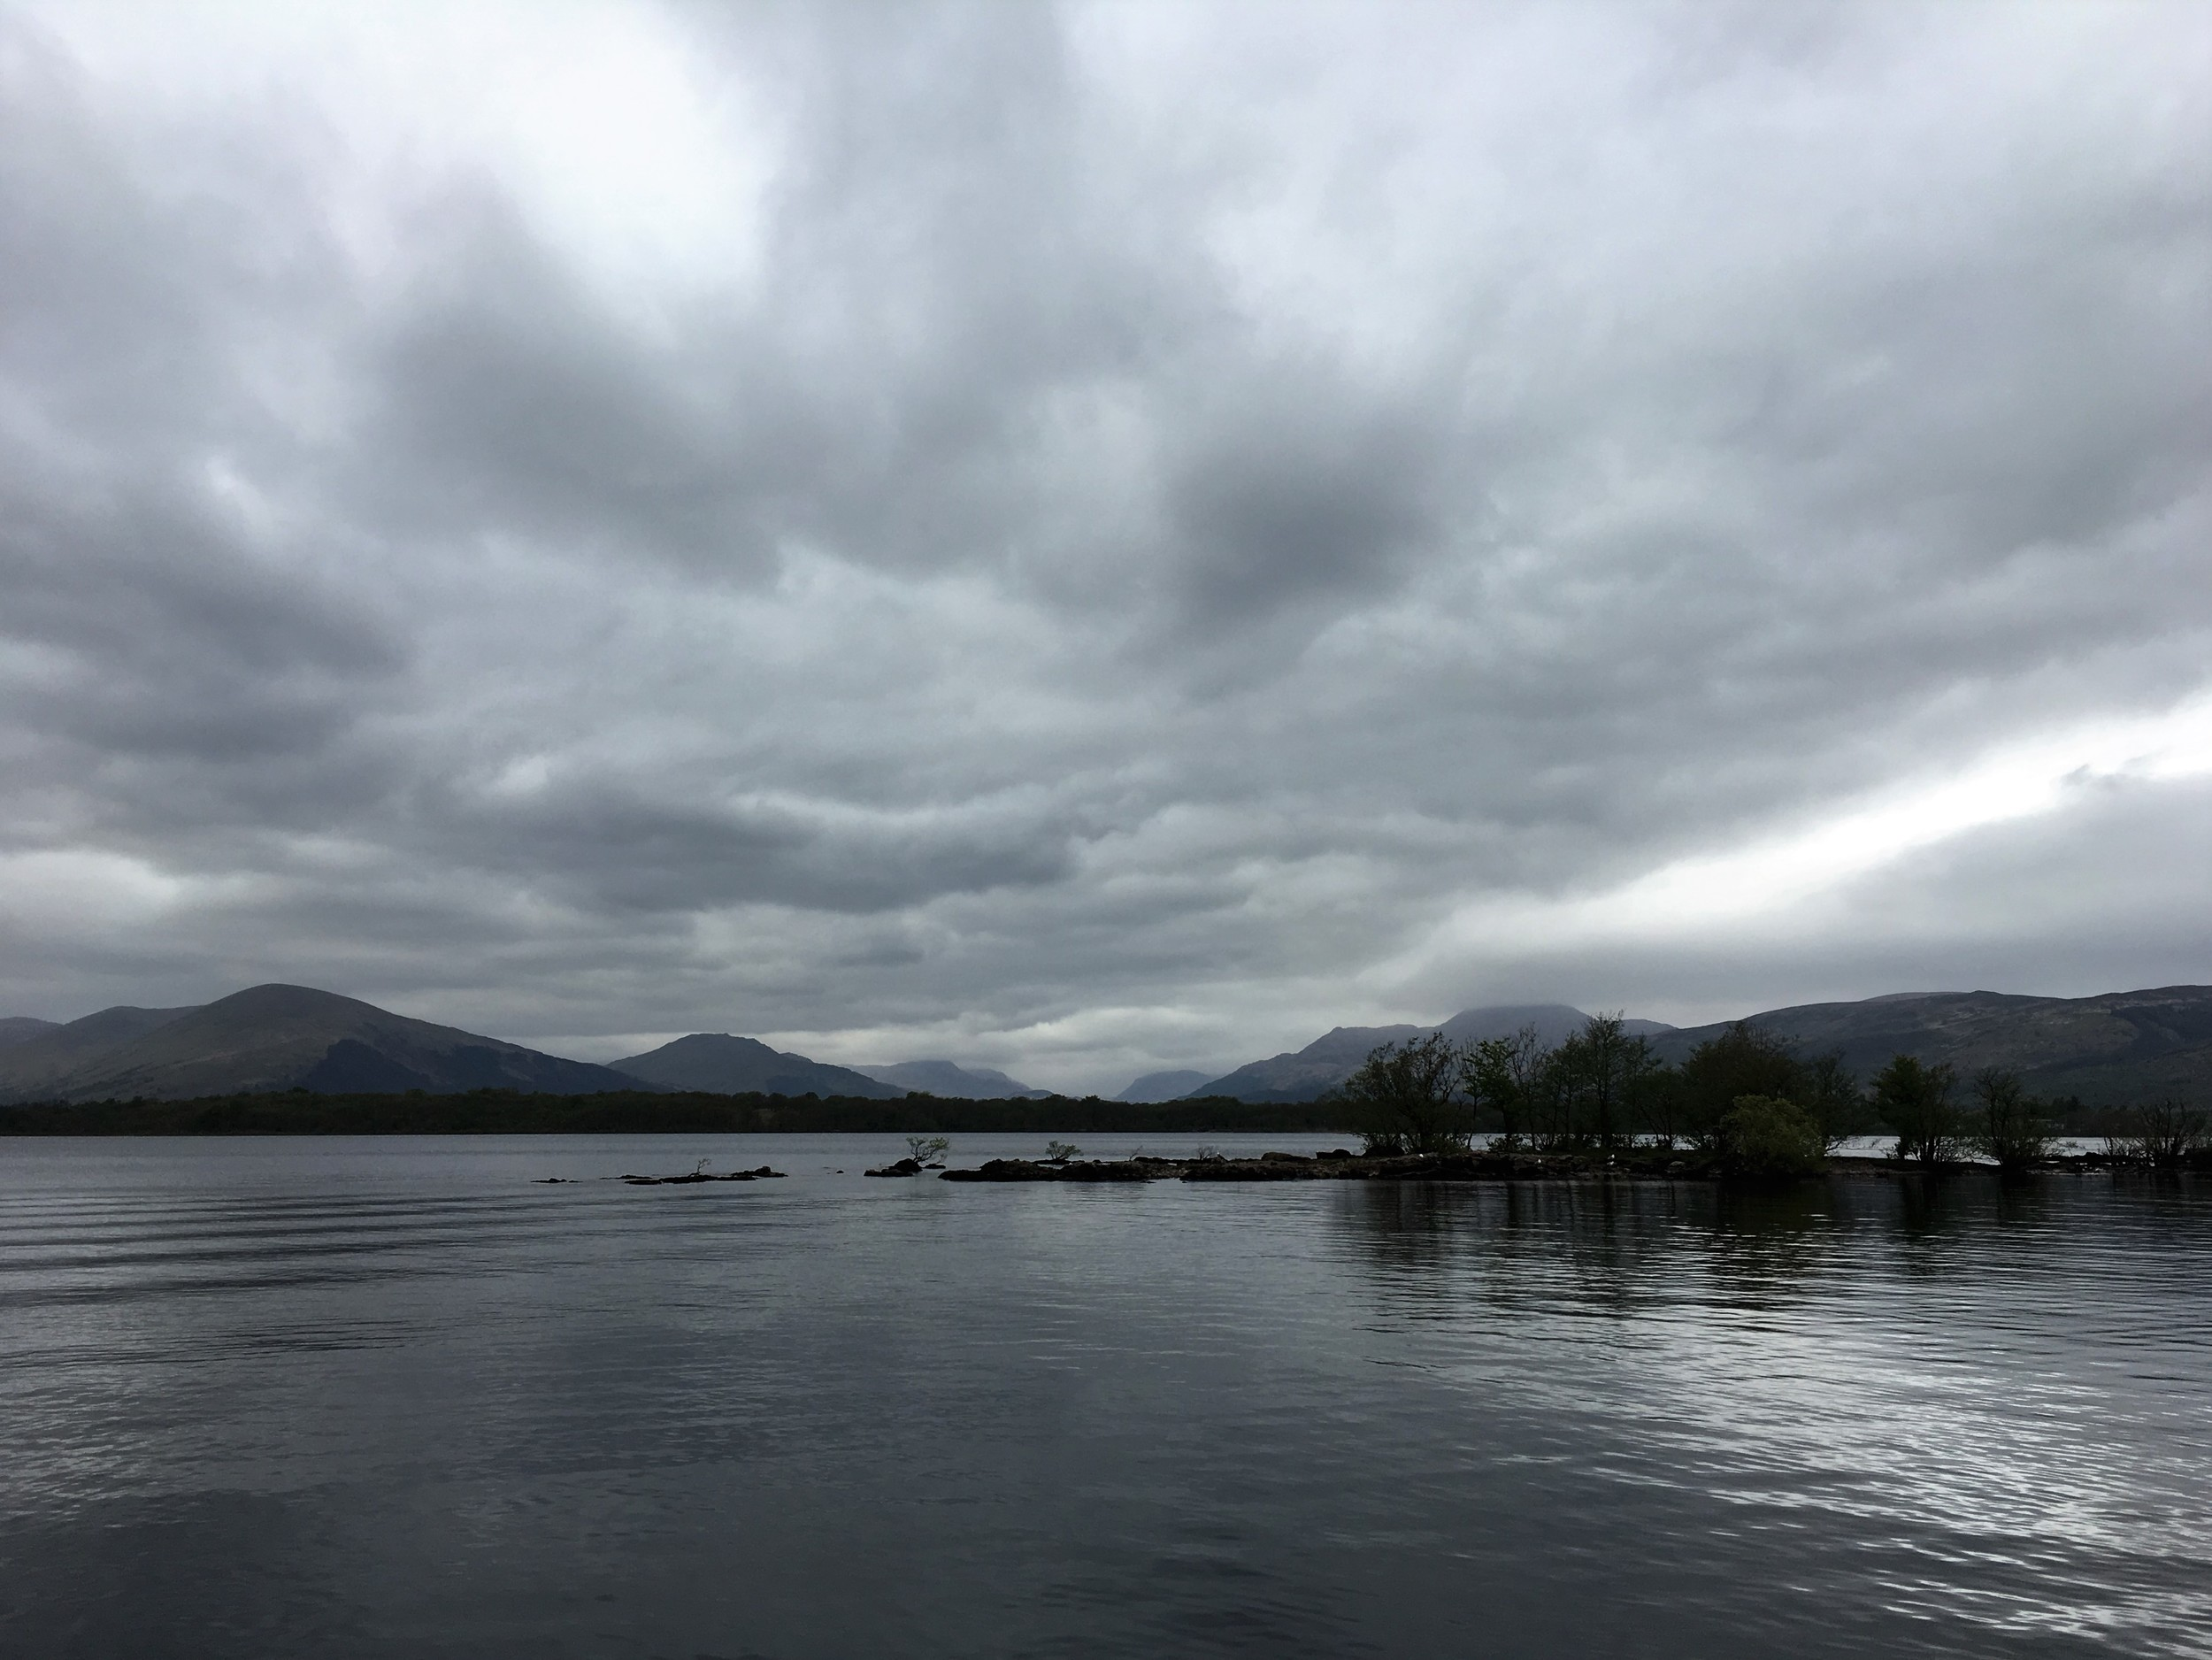 An atmospheric day with the spit of Inchcailloch and Ben Lomond in the background. Loch Lomond is one of those places where the weather doesn't really diminish the beauty of the view, it merely alters it.